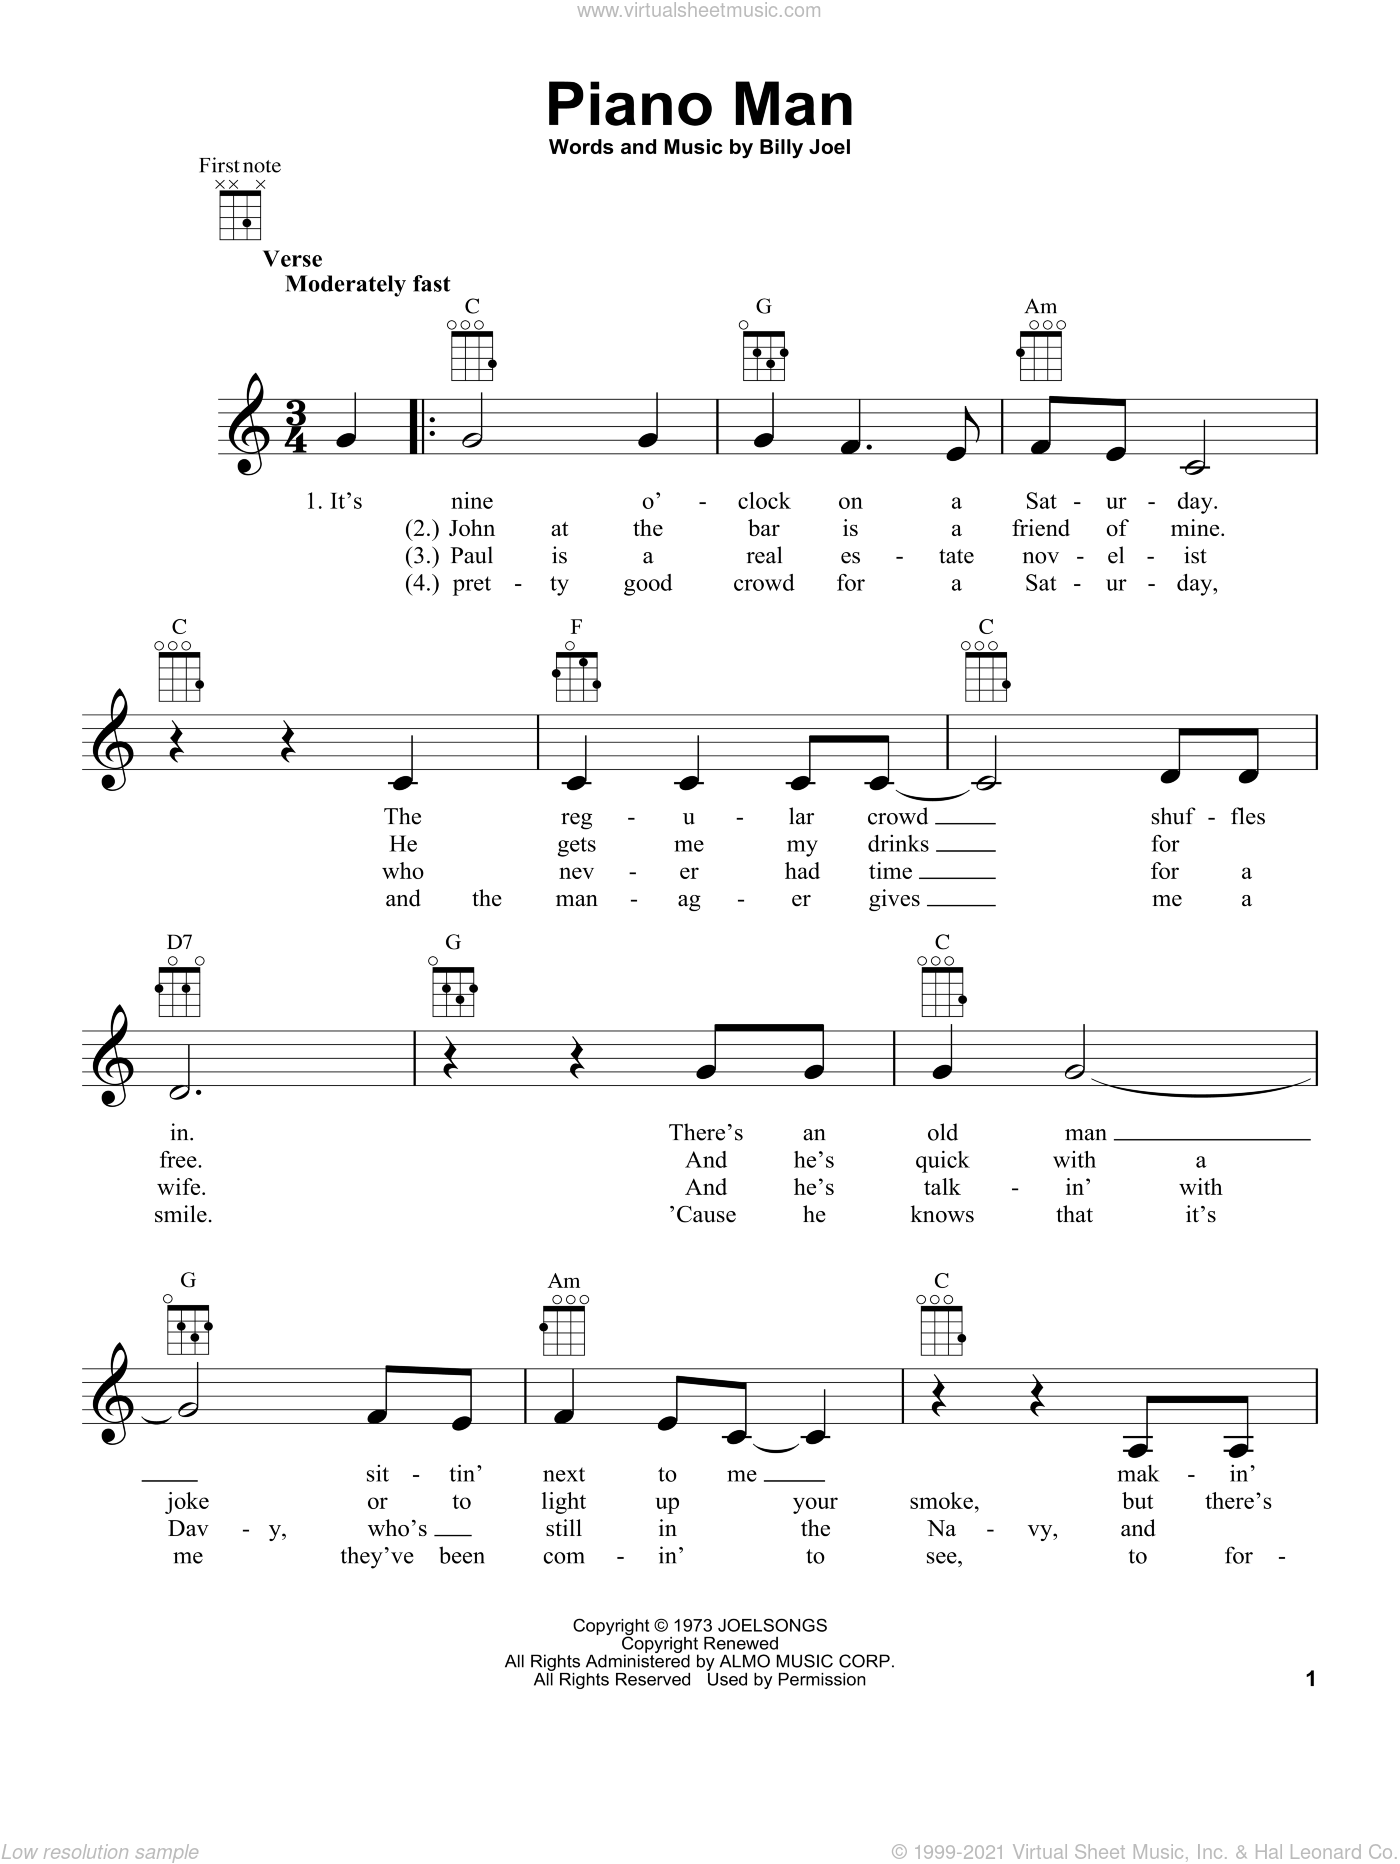 Piano Man sheet music for ukulele by Billy Joel